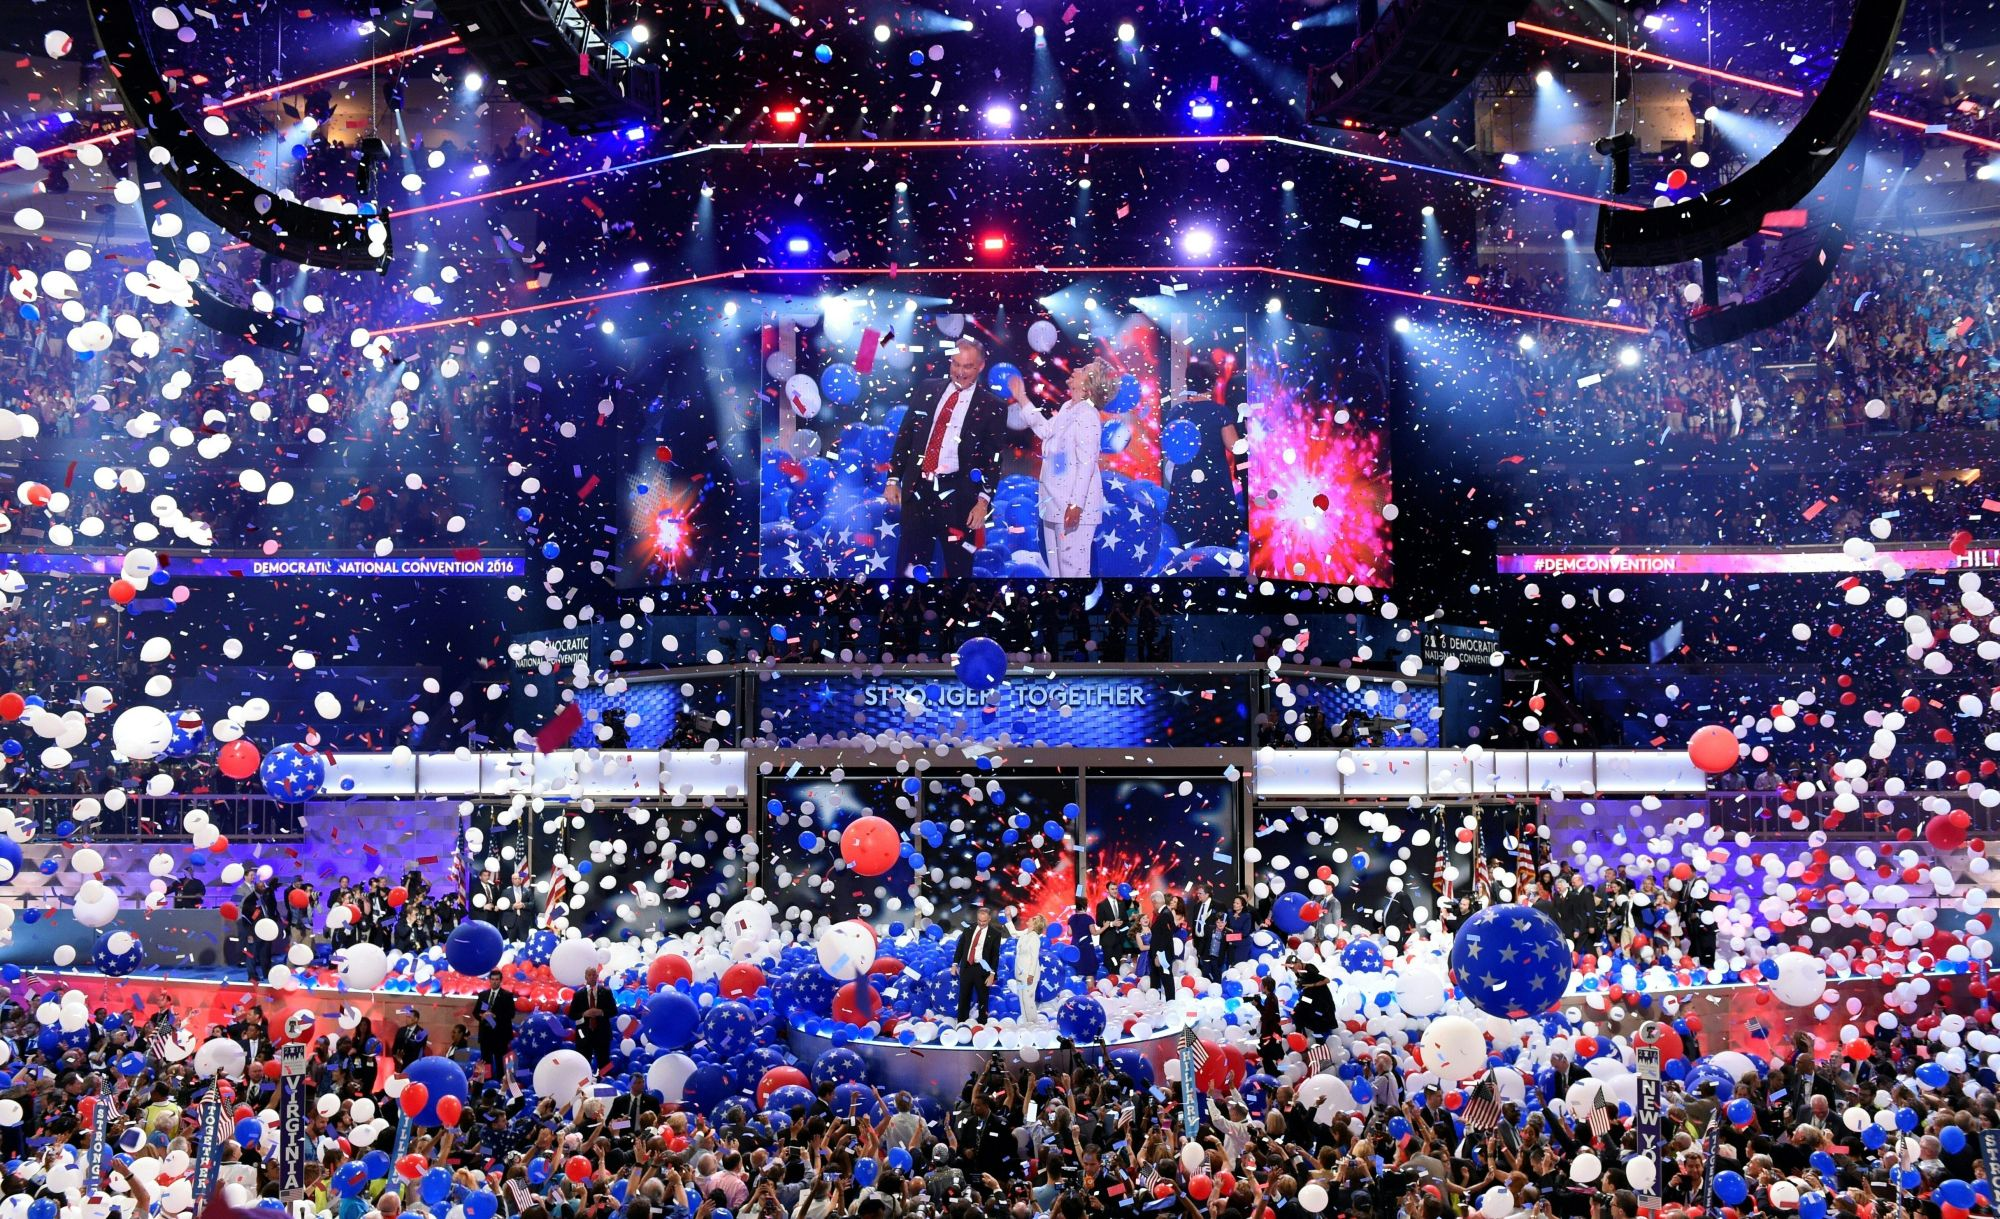 Balloons come down on Democratic presidential nominee Hillary Clinton and running mate Tim Kaine at the end of the fourth and final night of the Democratic National Convention at Wells Fargo Center on July 28, 2016, in Philadelphia, Penn. (Credit: SAUL LOEB/AFP/Getty Images)